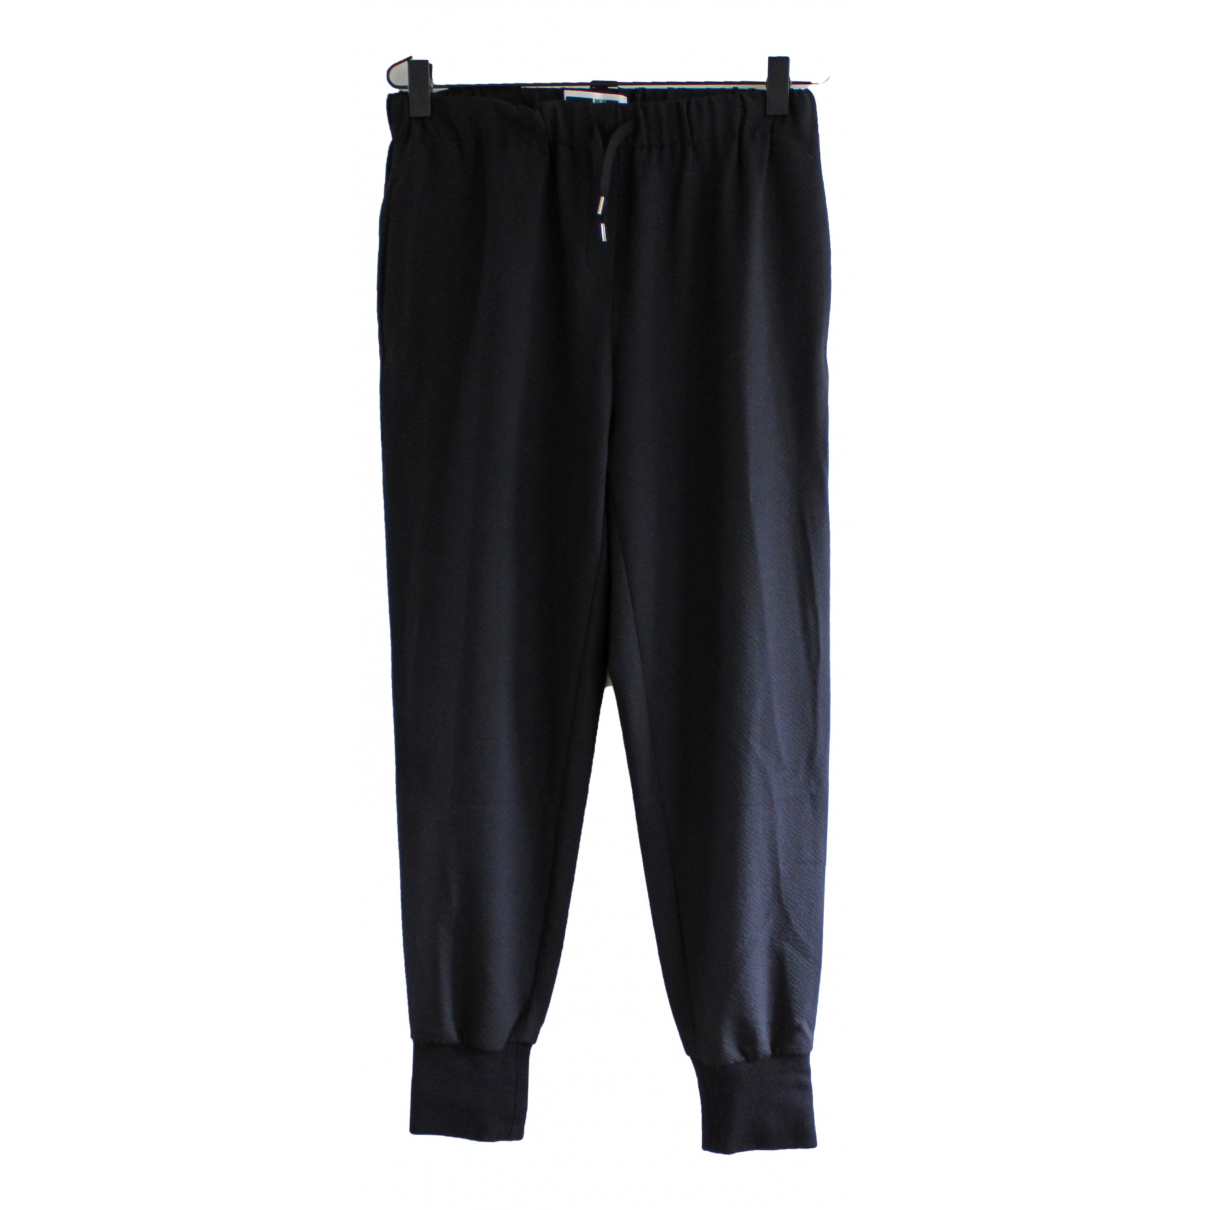 Alexander Mcqueen \N Black Trousers for Men M International